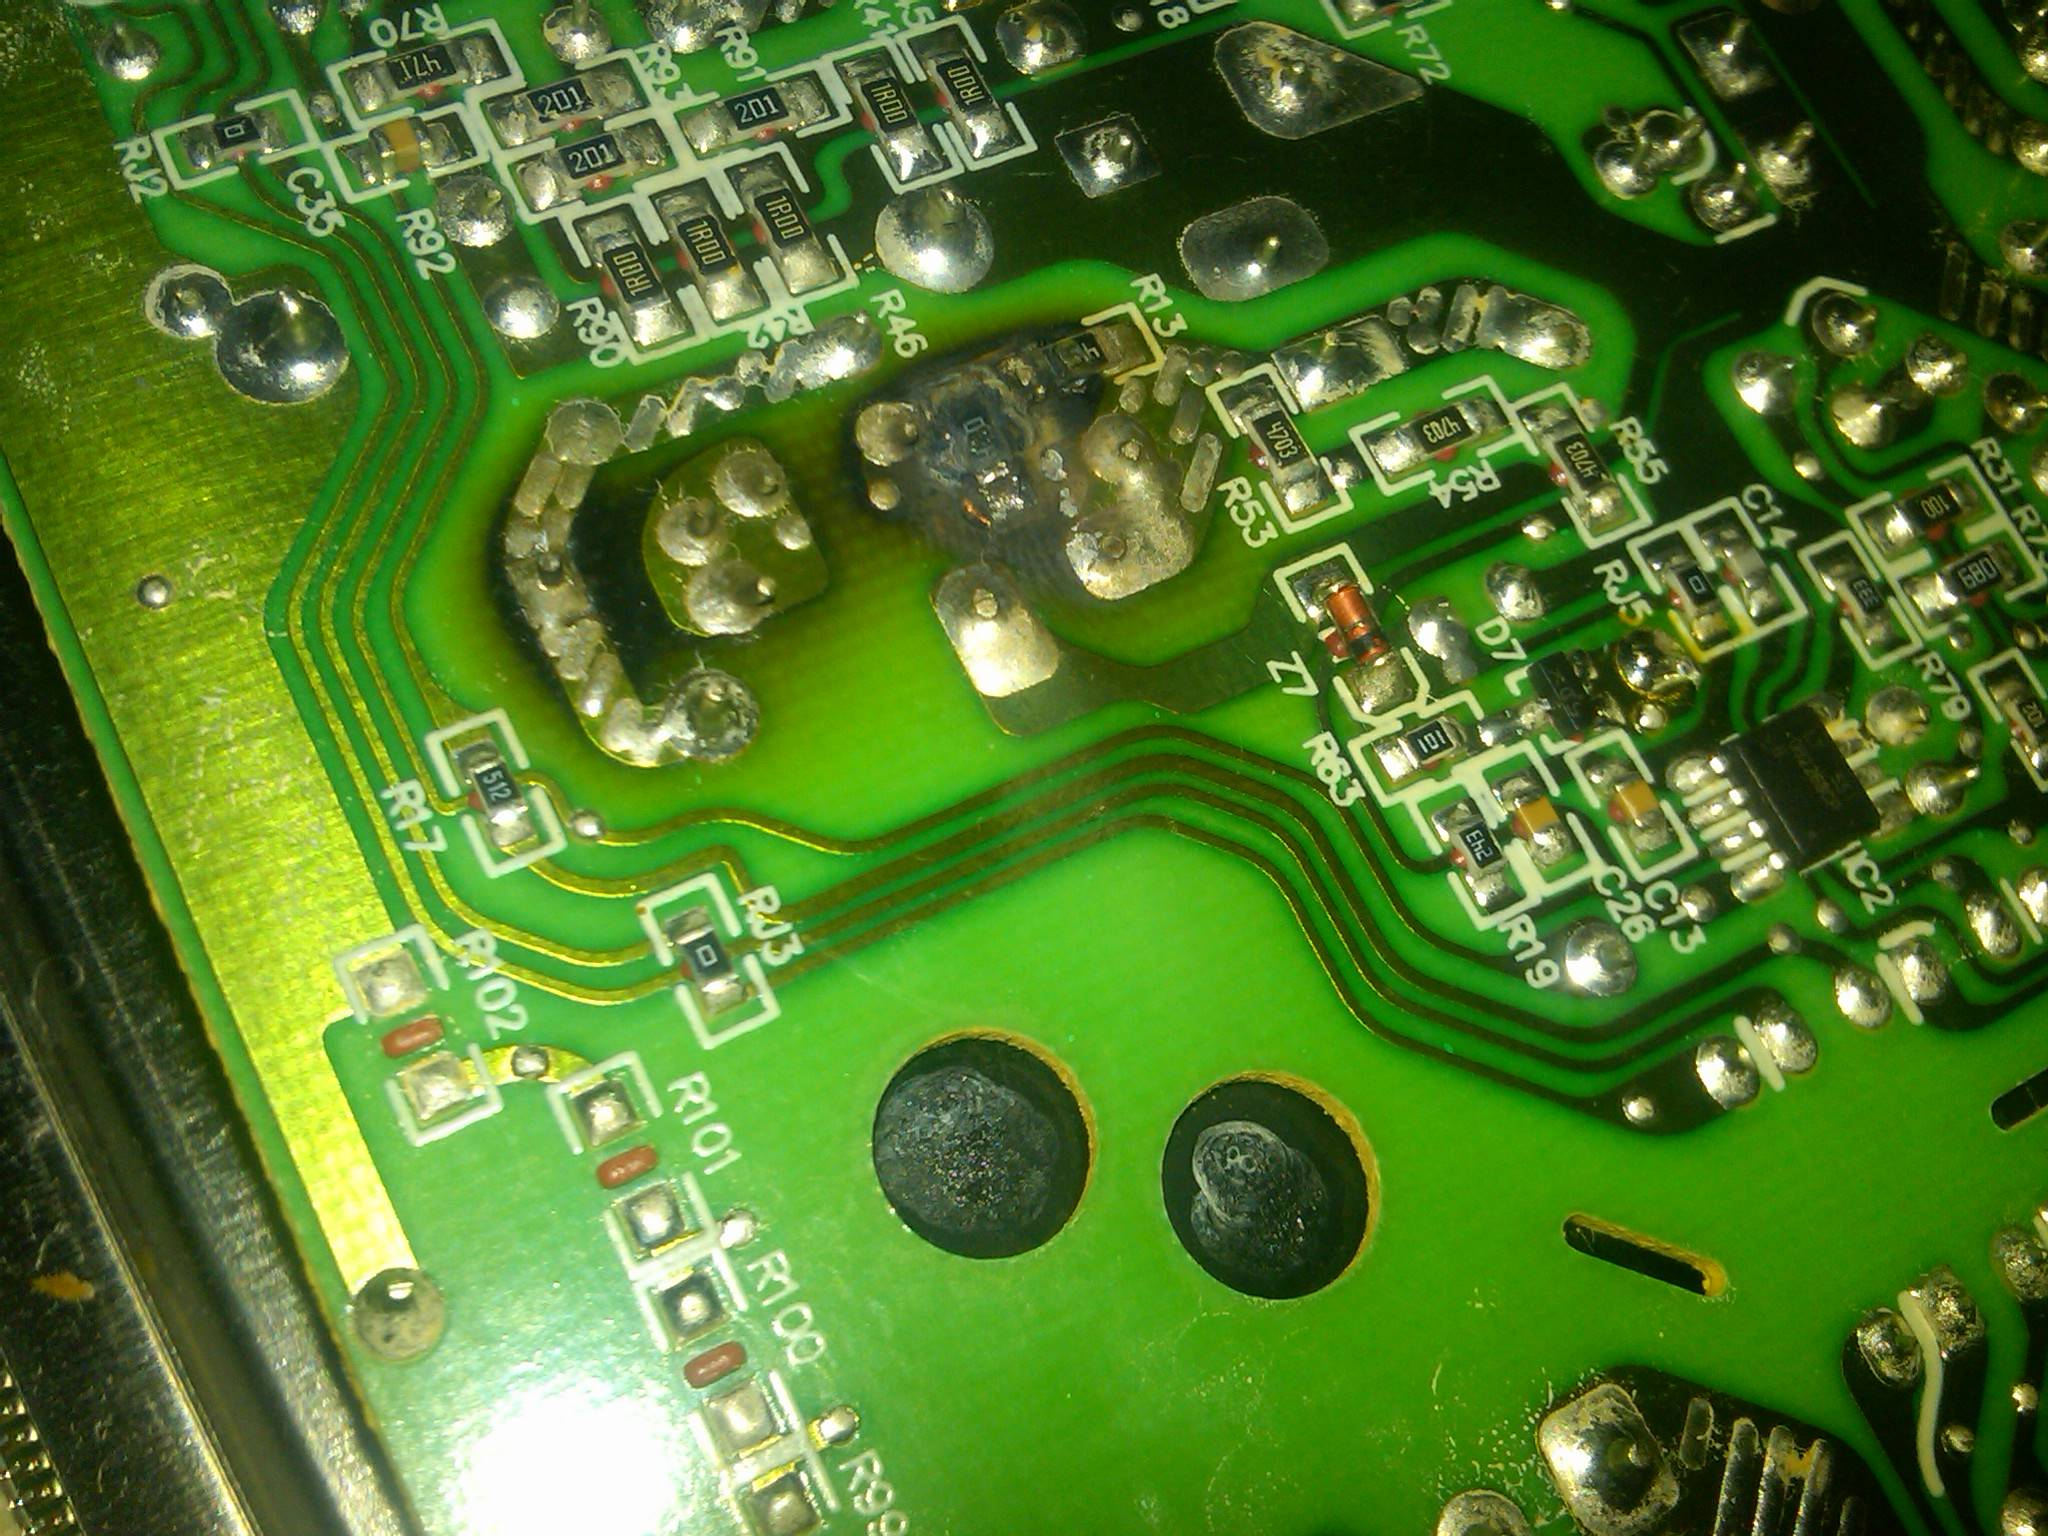 Electromech Engineering Pakistan Your Ideas Our Solutions Circuitboardfabricationcompany Latest Projects